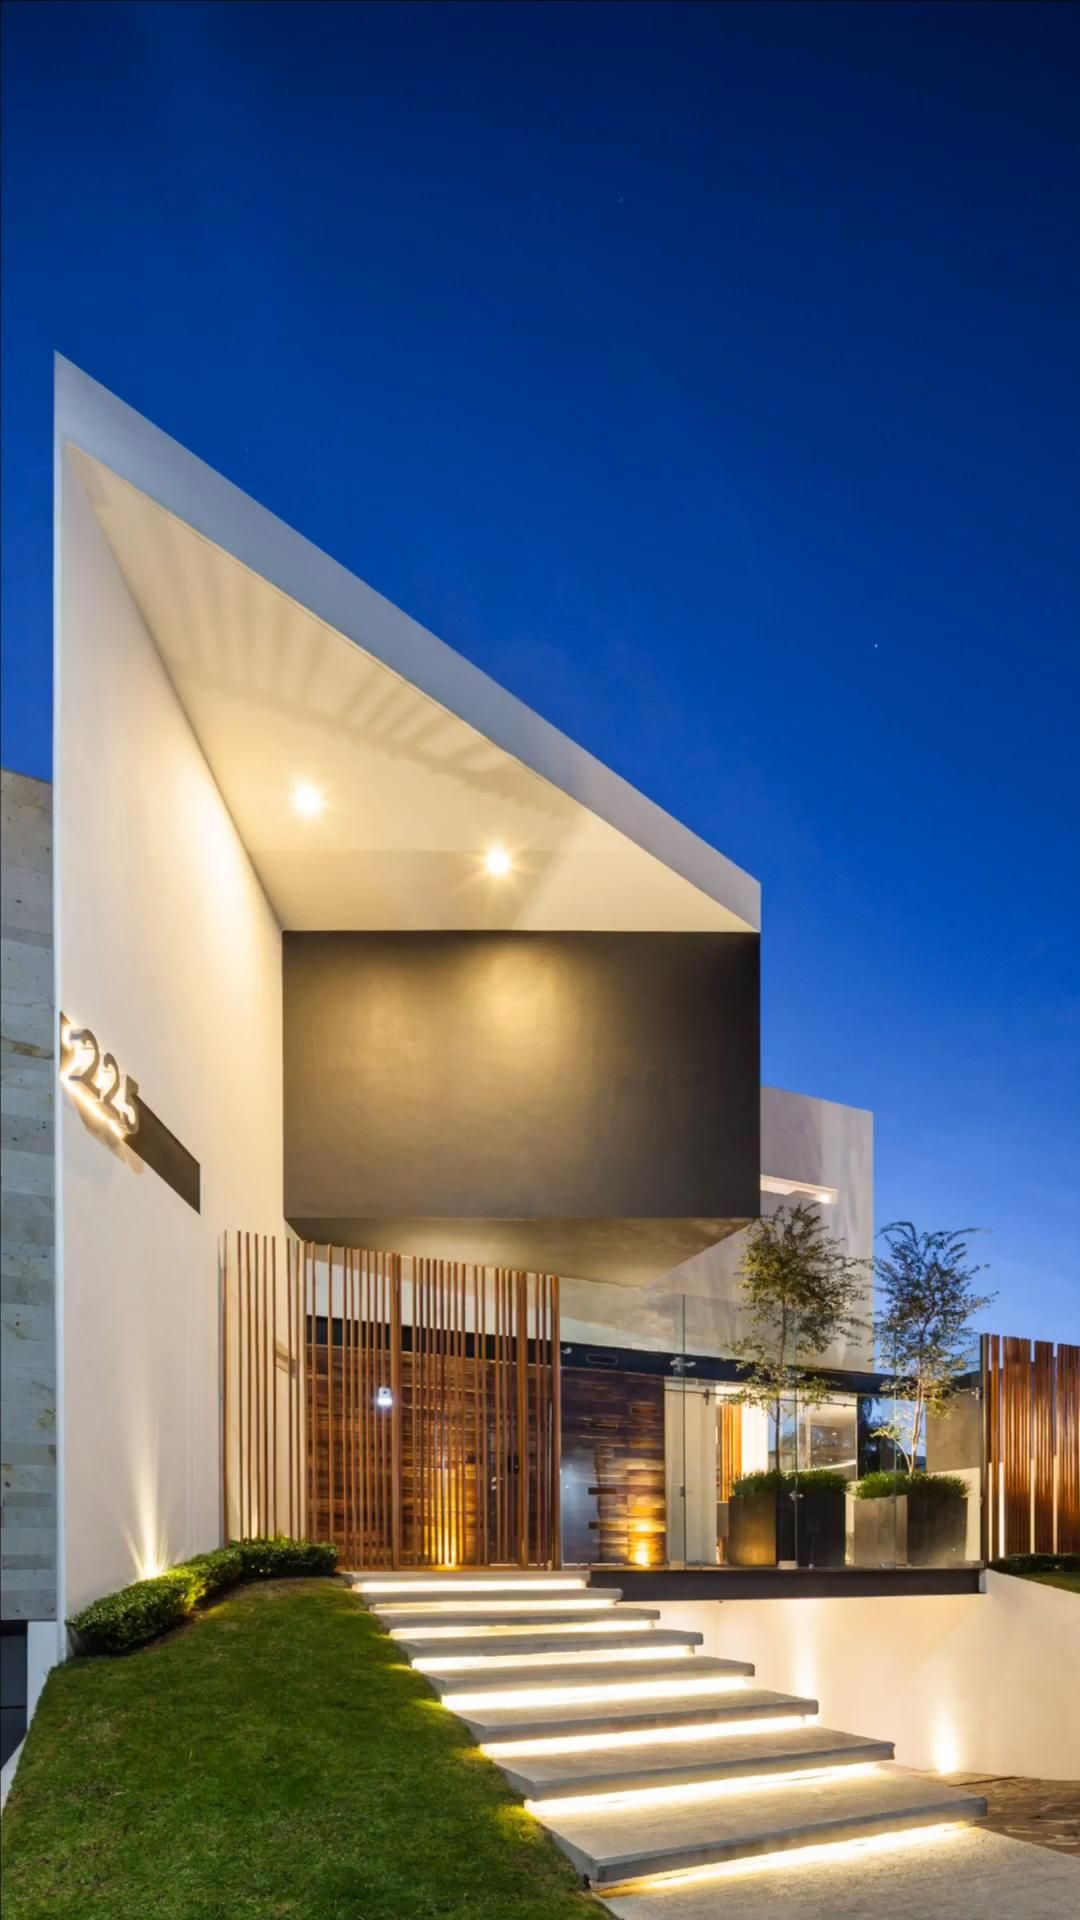 225 House in Jalisco Mexico by 21 Arquitectos